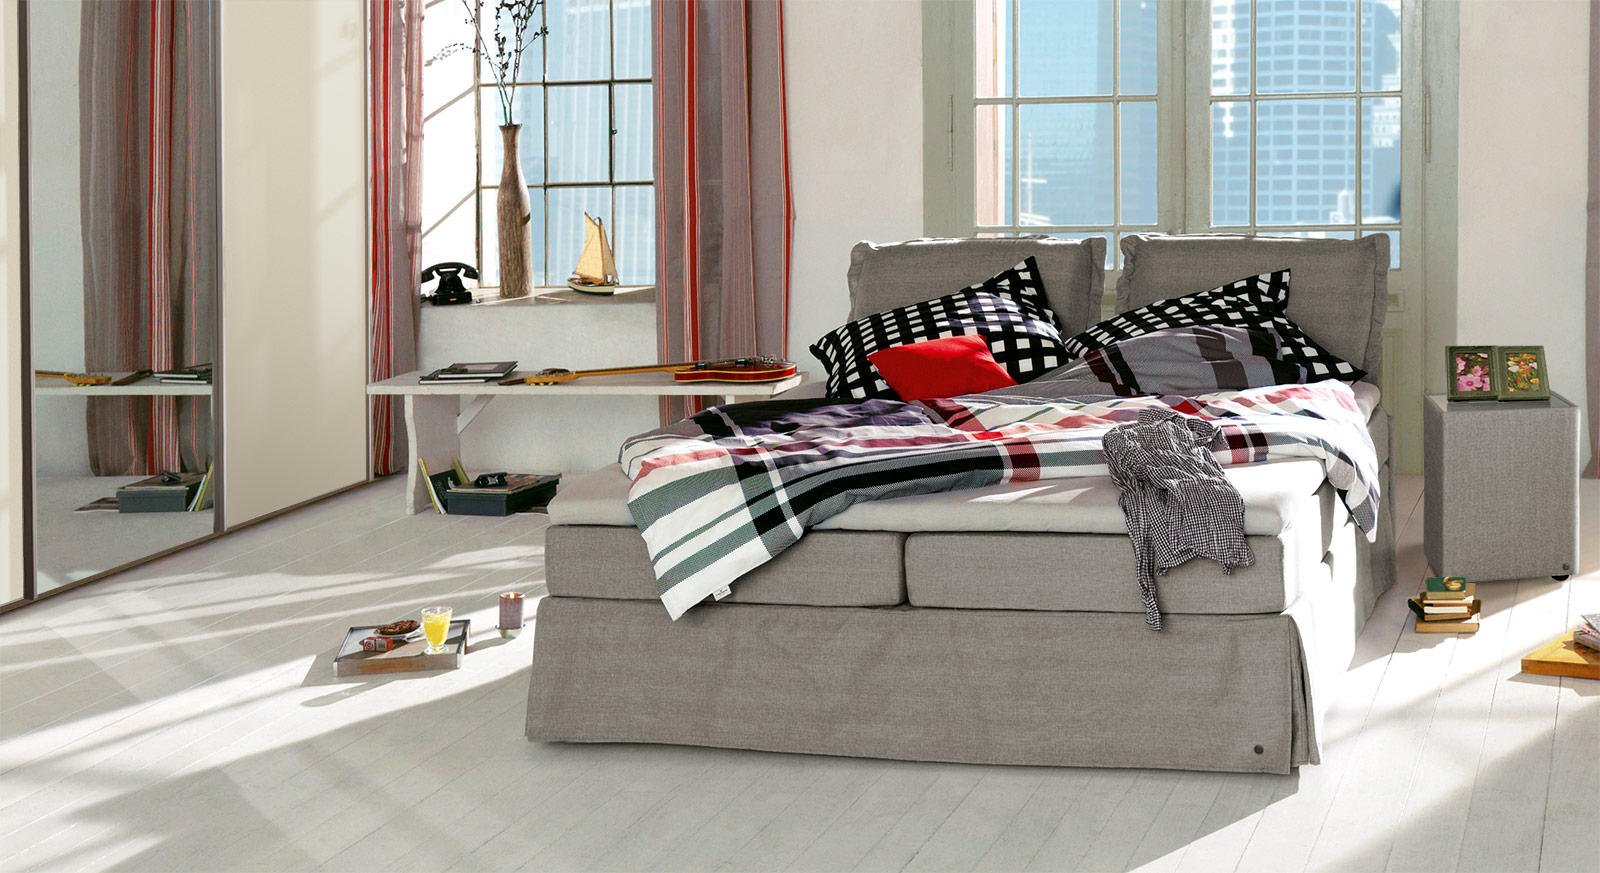 Boxspringbett Tom Tailor Cushion in beigebraunem Webstoff